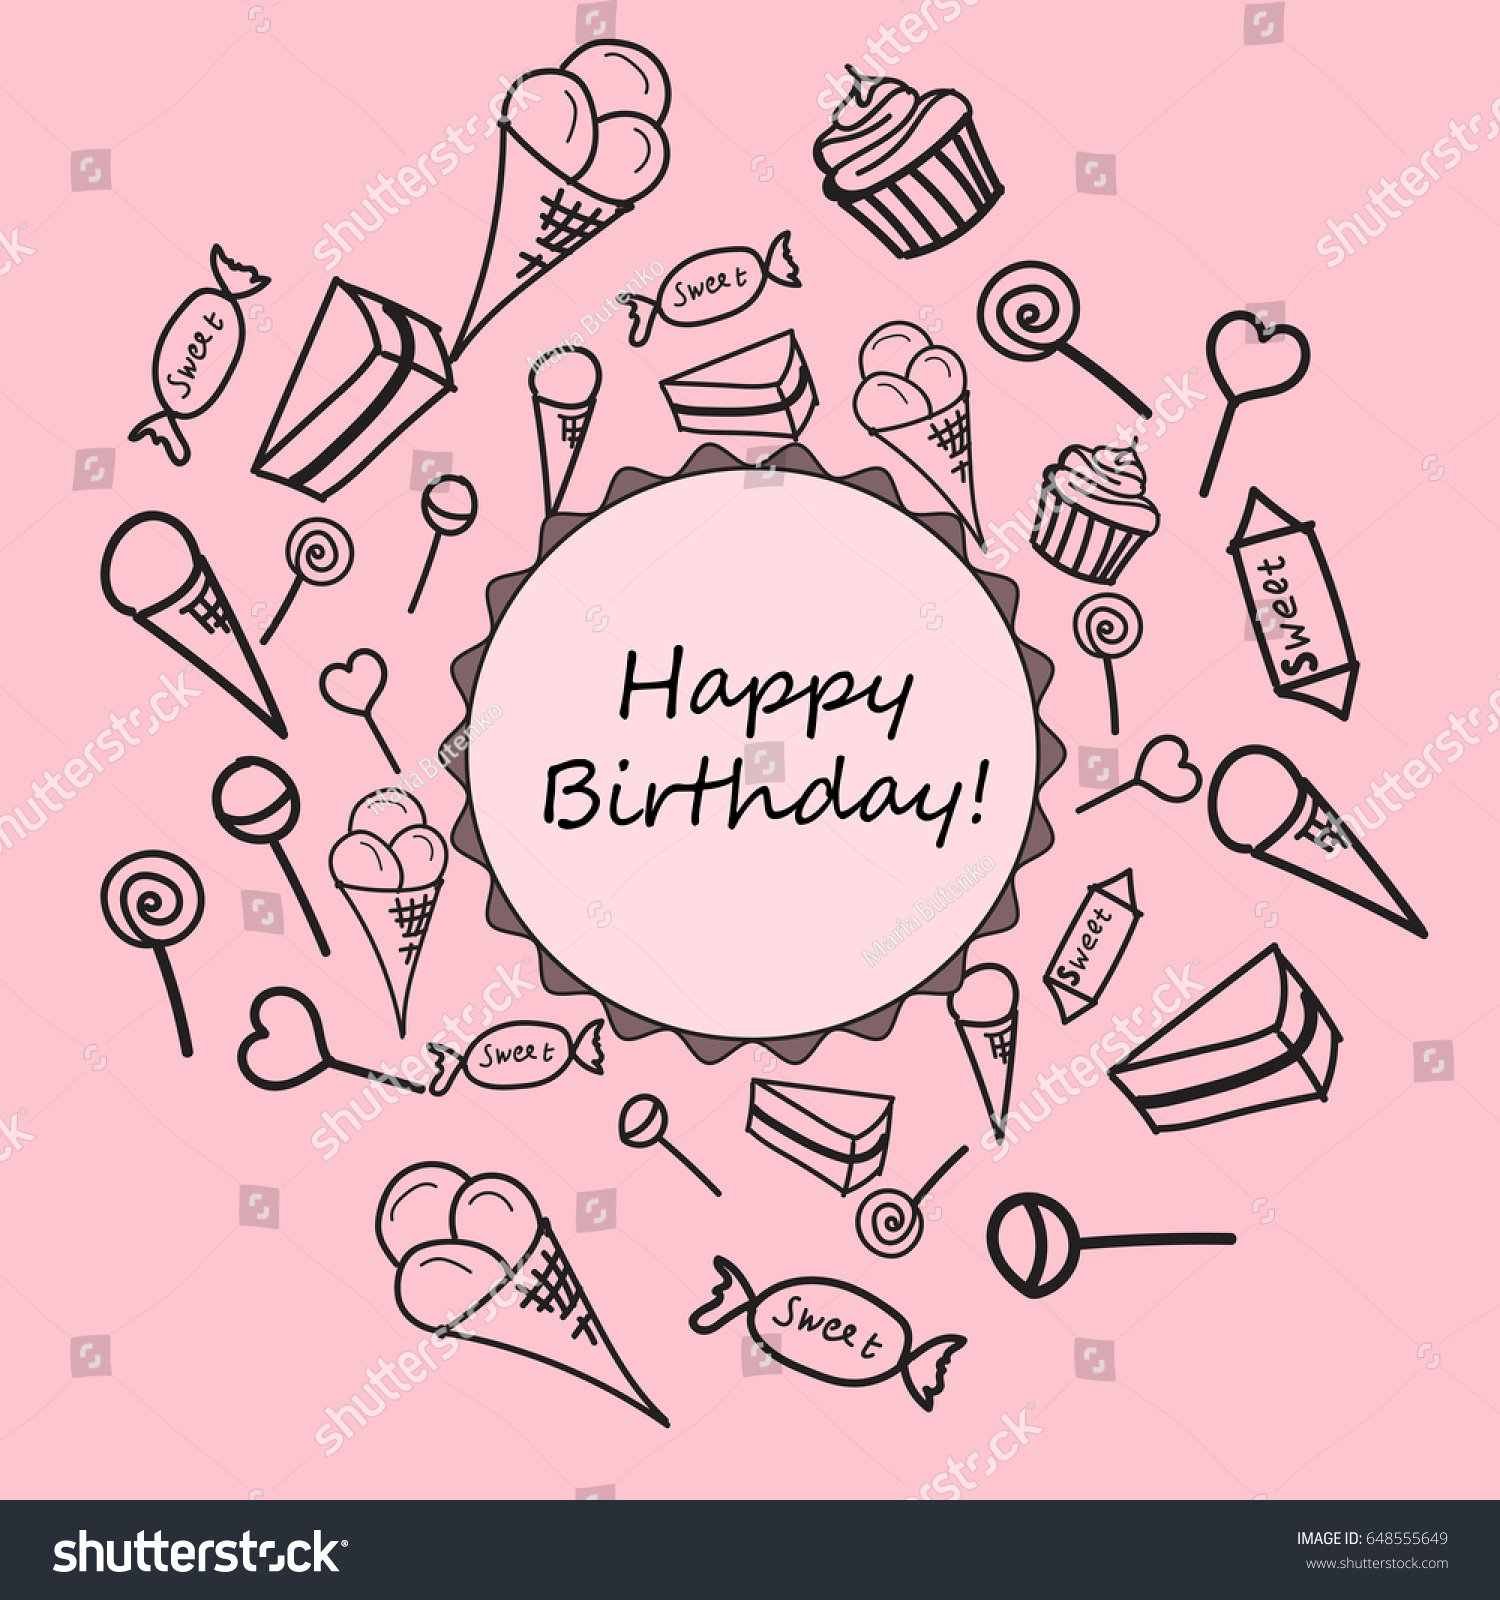 Happy Birthday Card Childrens Drawings Of Sweets Vector Illustration